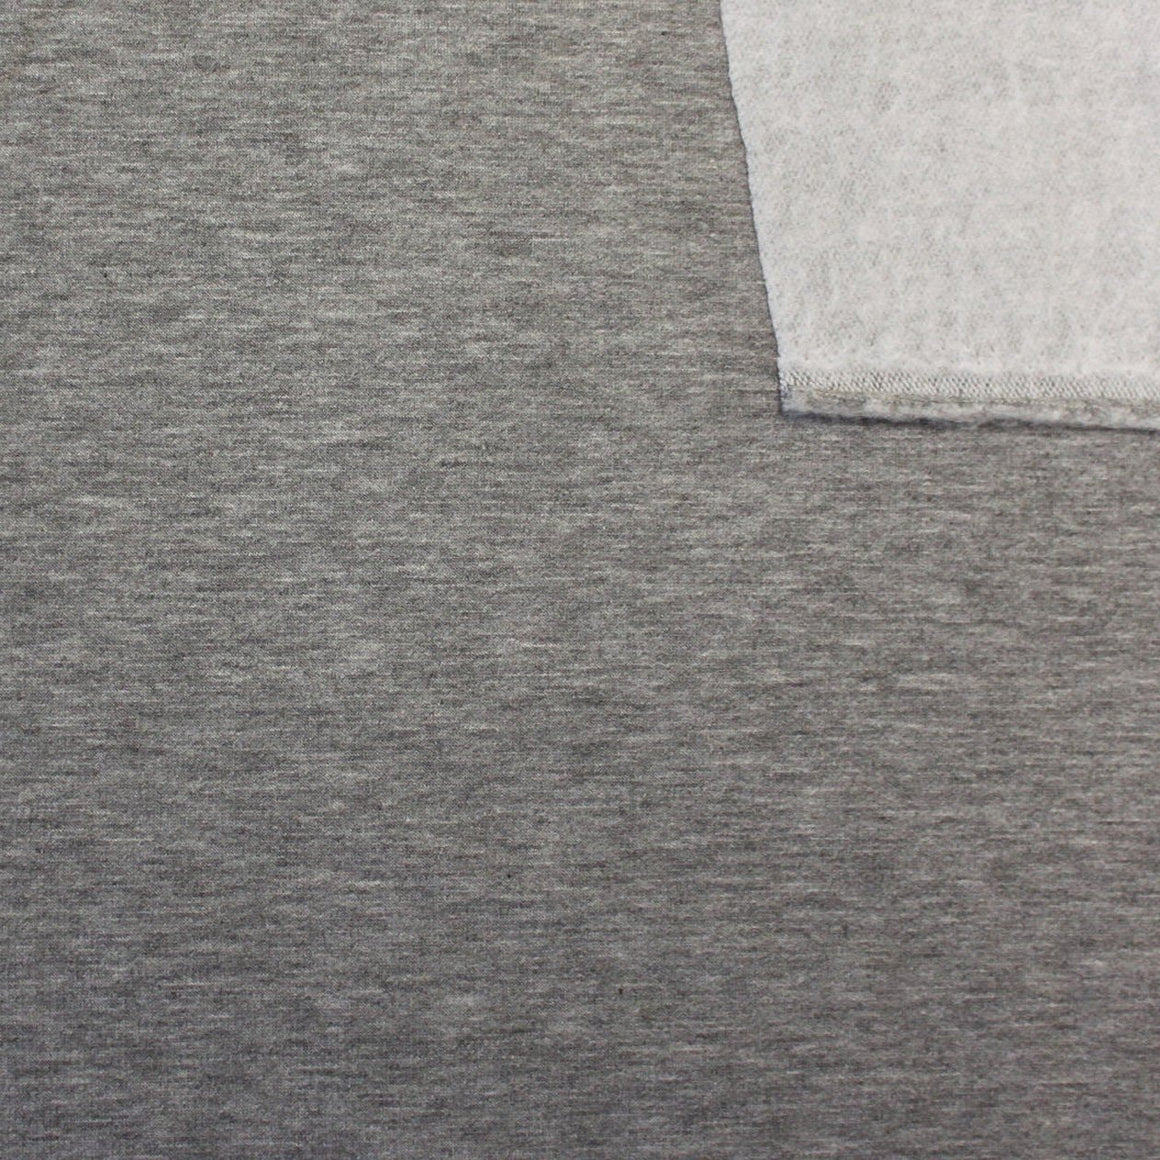 Medium Grey FLEECE Sweatshirt Knit Fabric - Raspberry Creek Fabrics